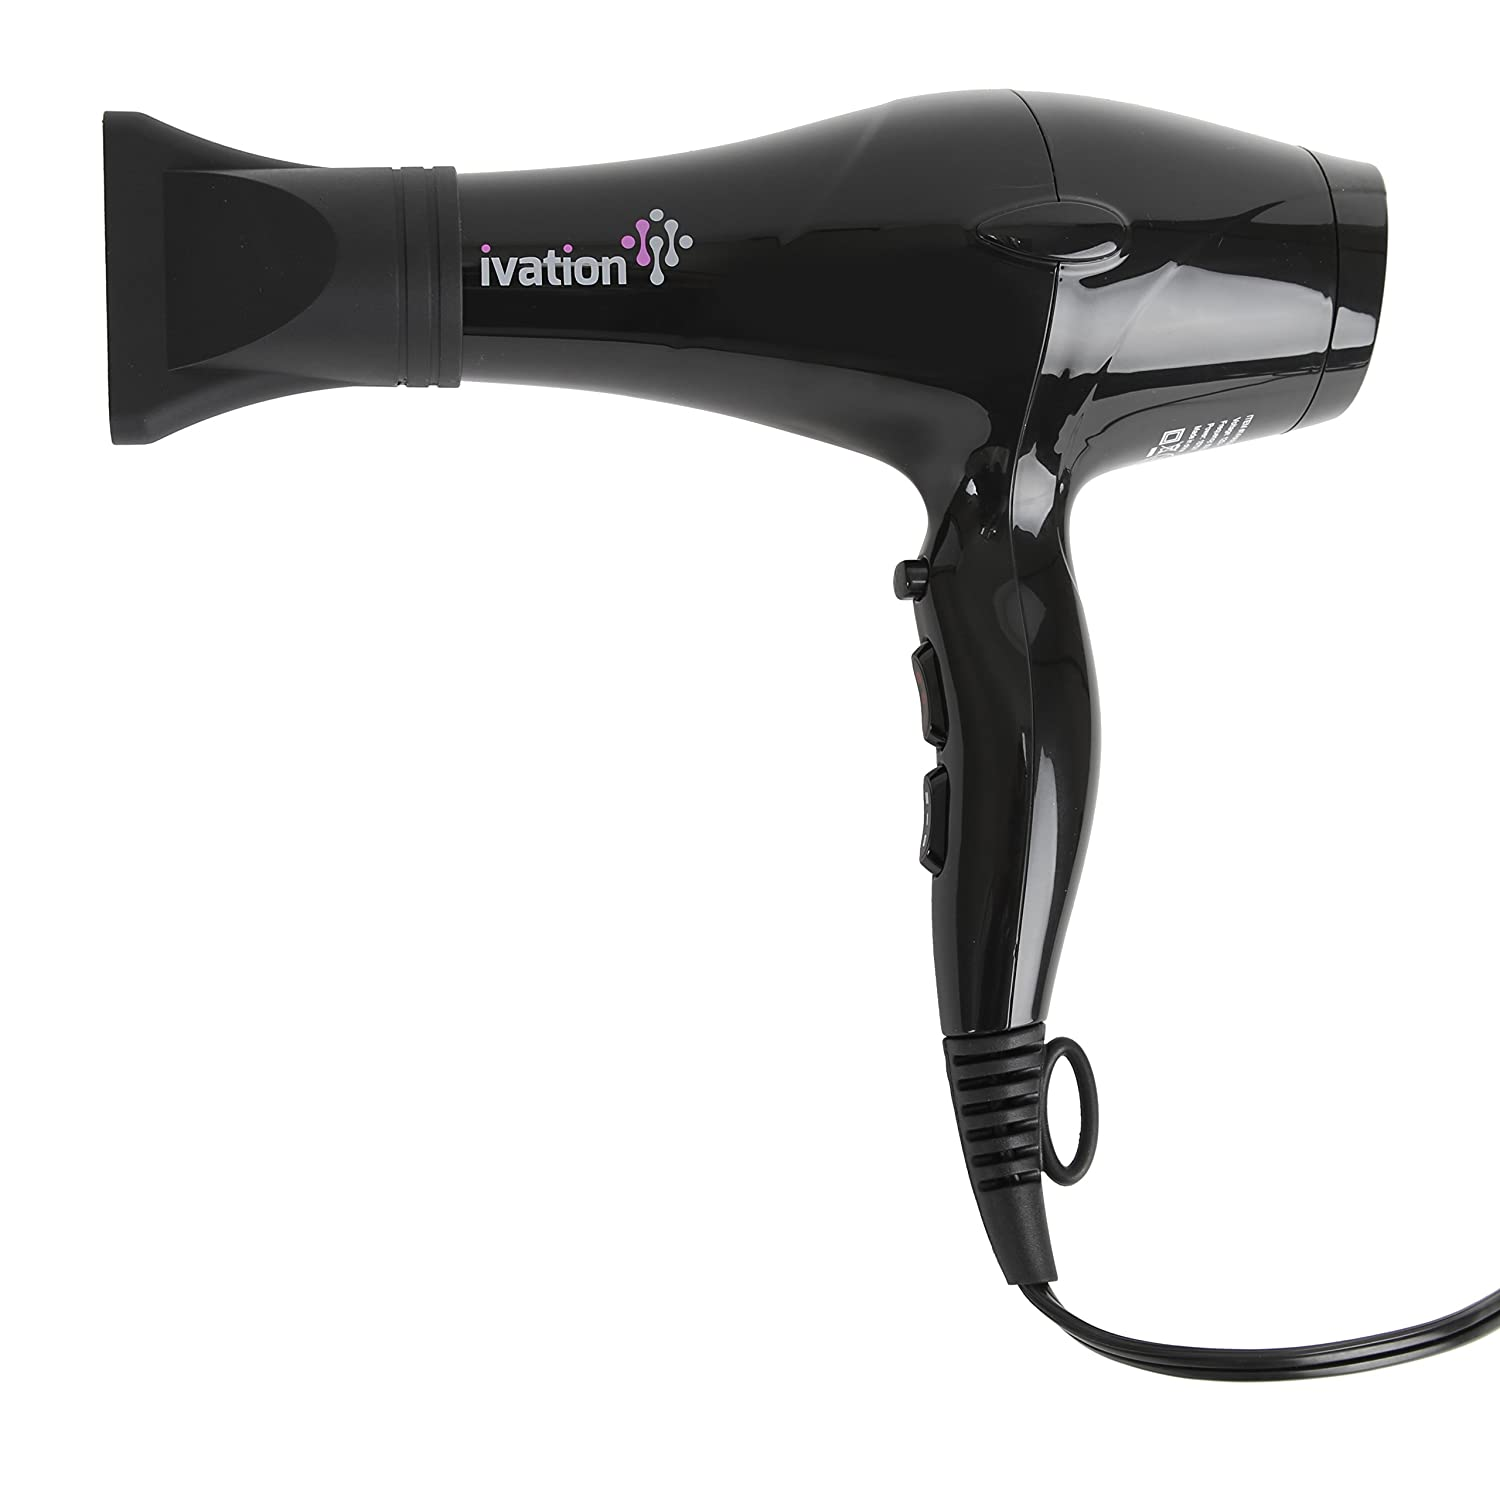 Ceramic Hair Blow Dryer Professional Powerful Turbo Blower 1875 Watts - Salon Quality Shine - 3 Heat - Cold Levels - 2 Speed Levels - 2 Nozzles - Lock Button - Extra-long Cord with Hang Ring